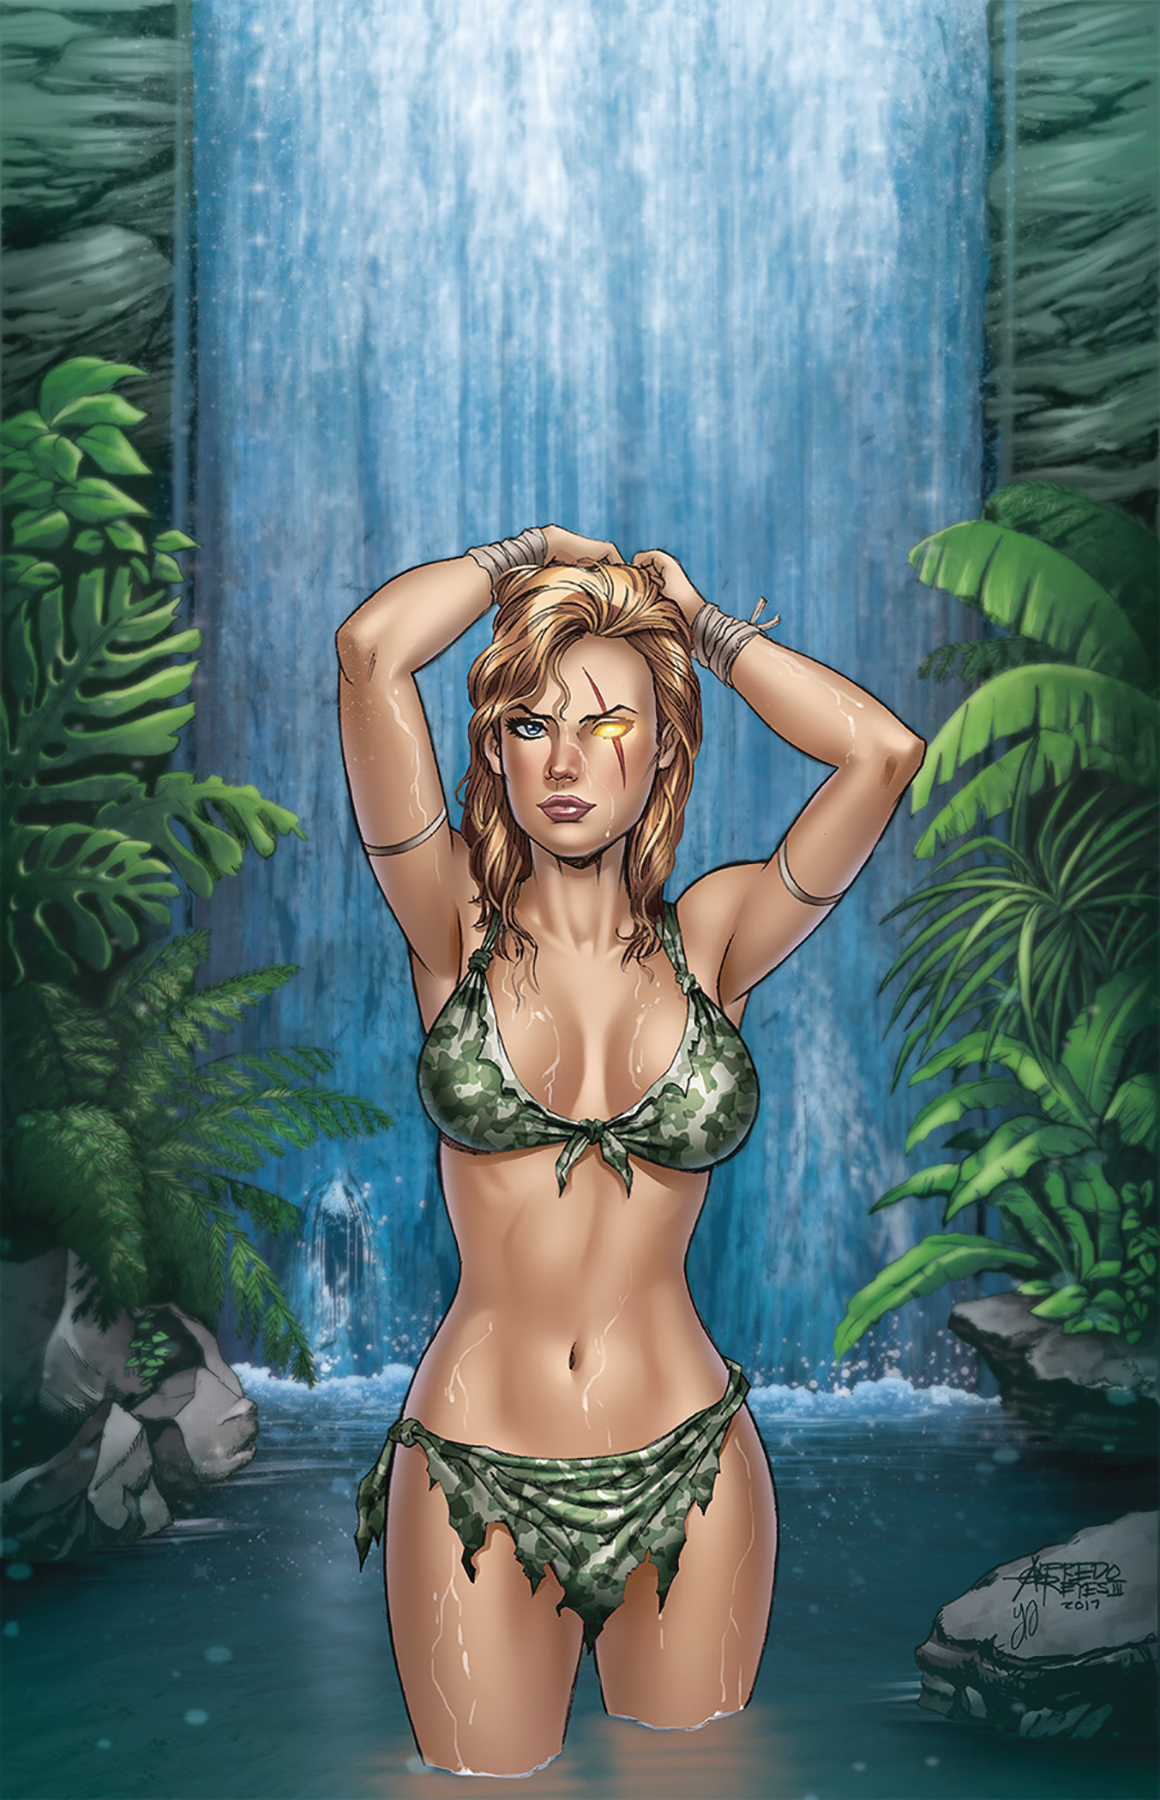 ROBYN HOOD THE HUNT #5 CVR C REYES